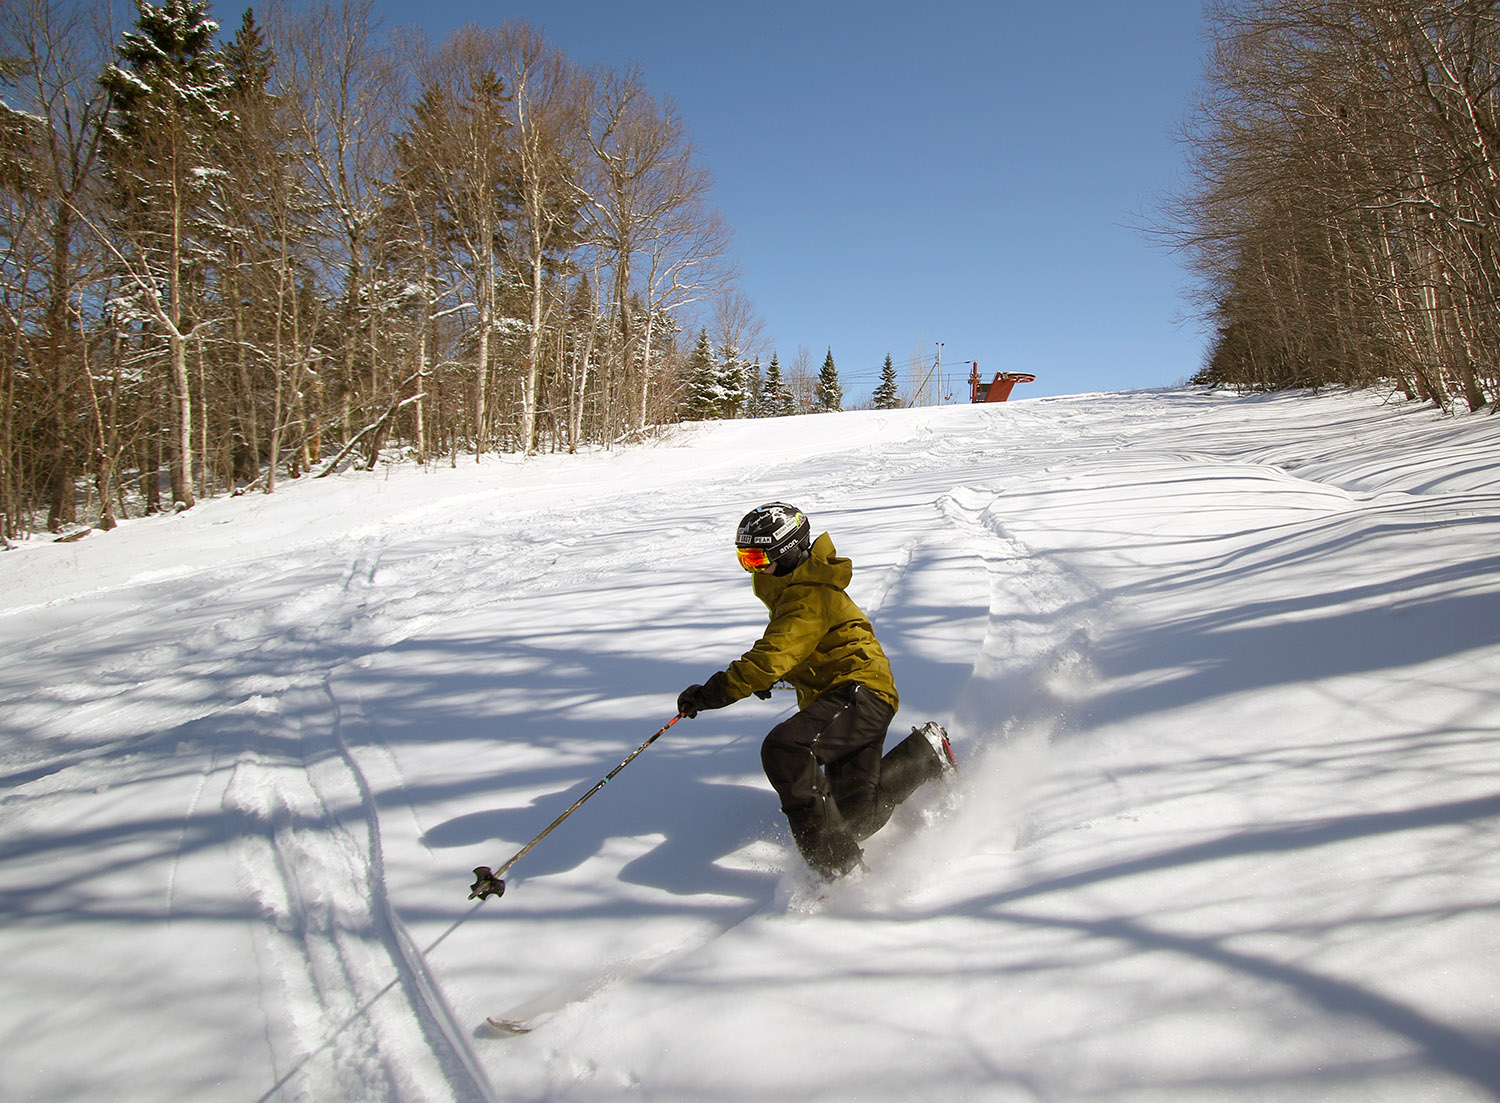 An image of Jay Telemark skiing in powder after an April snowstorm at Bolton Valley Ski Resort in Vermont